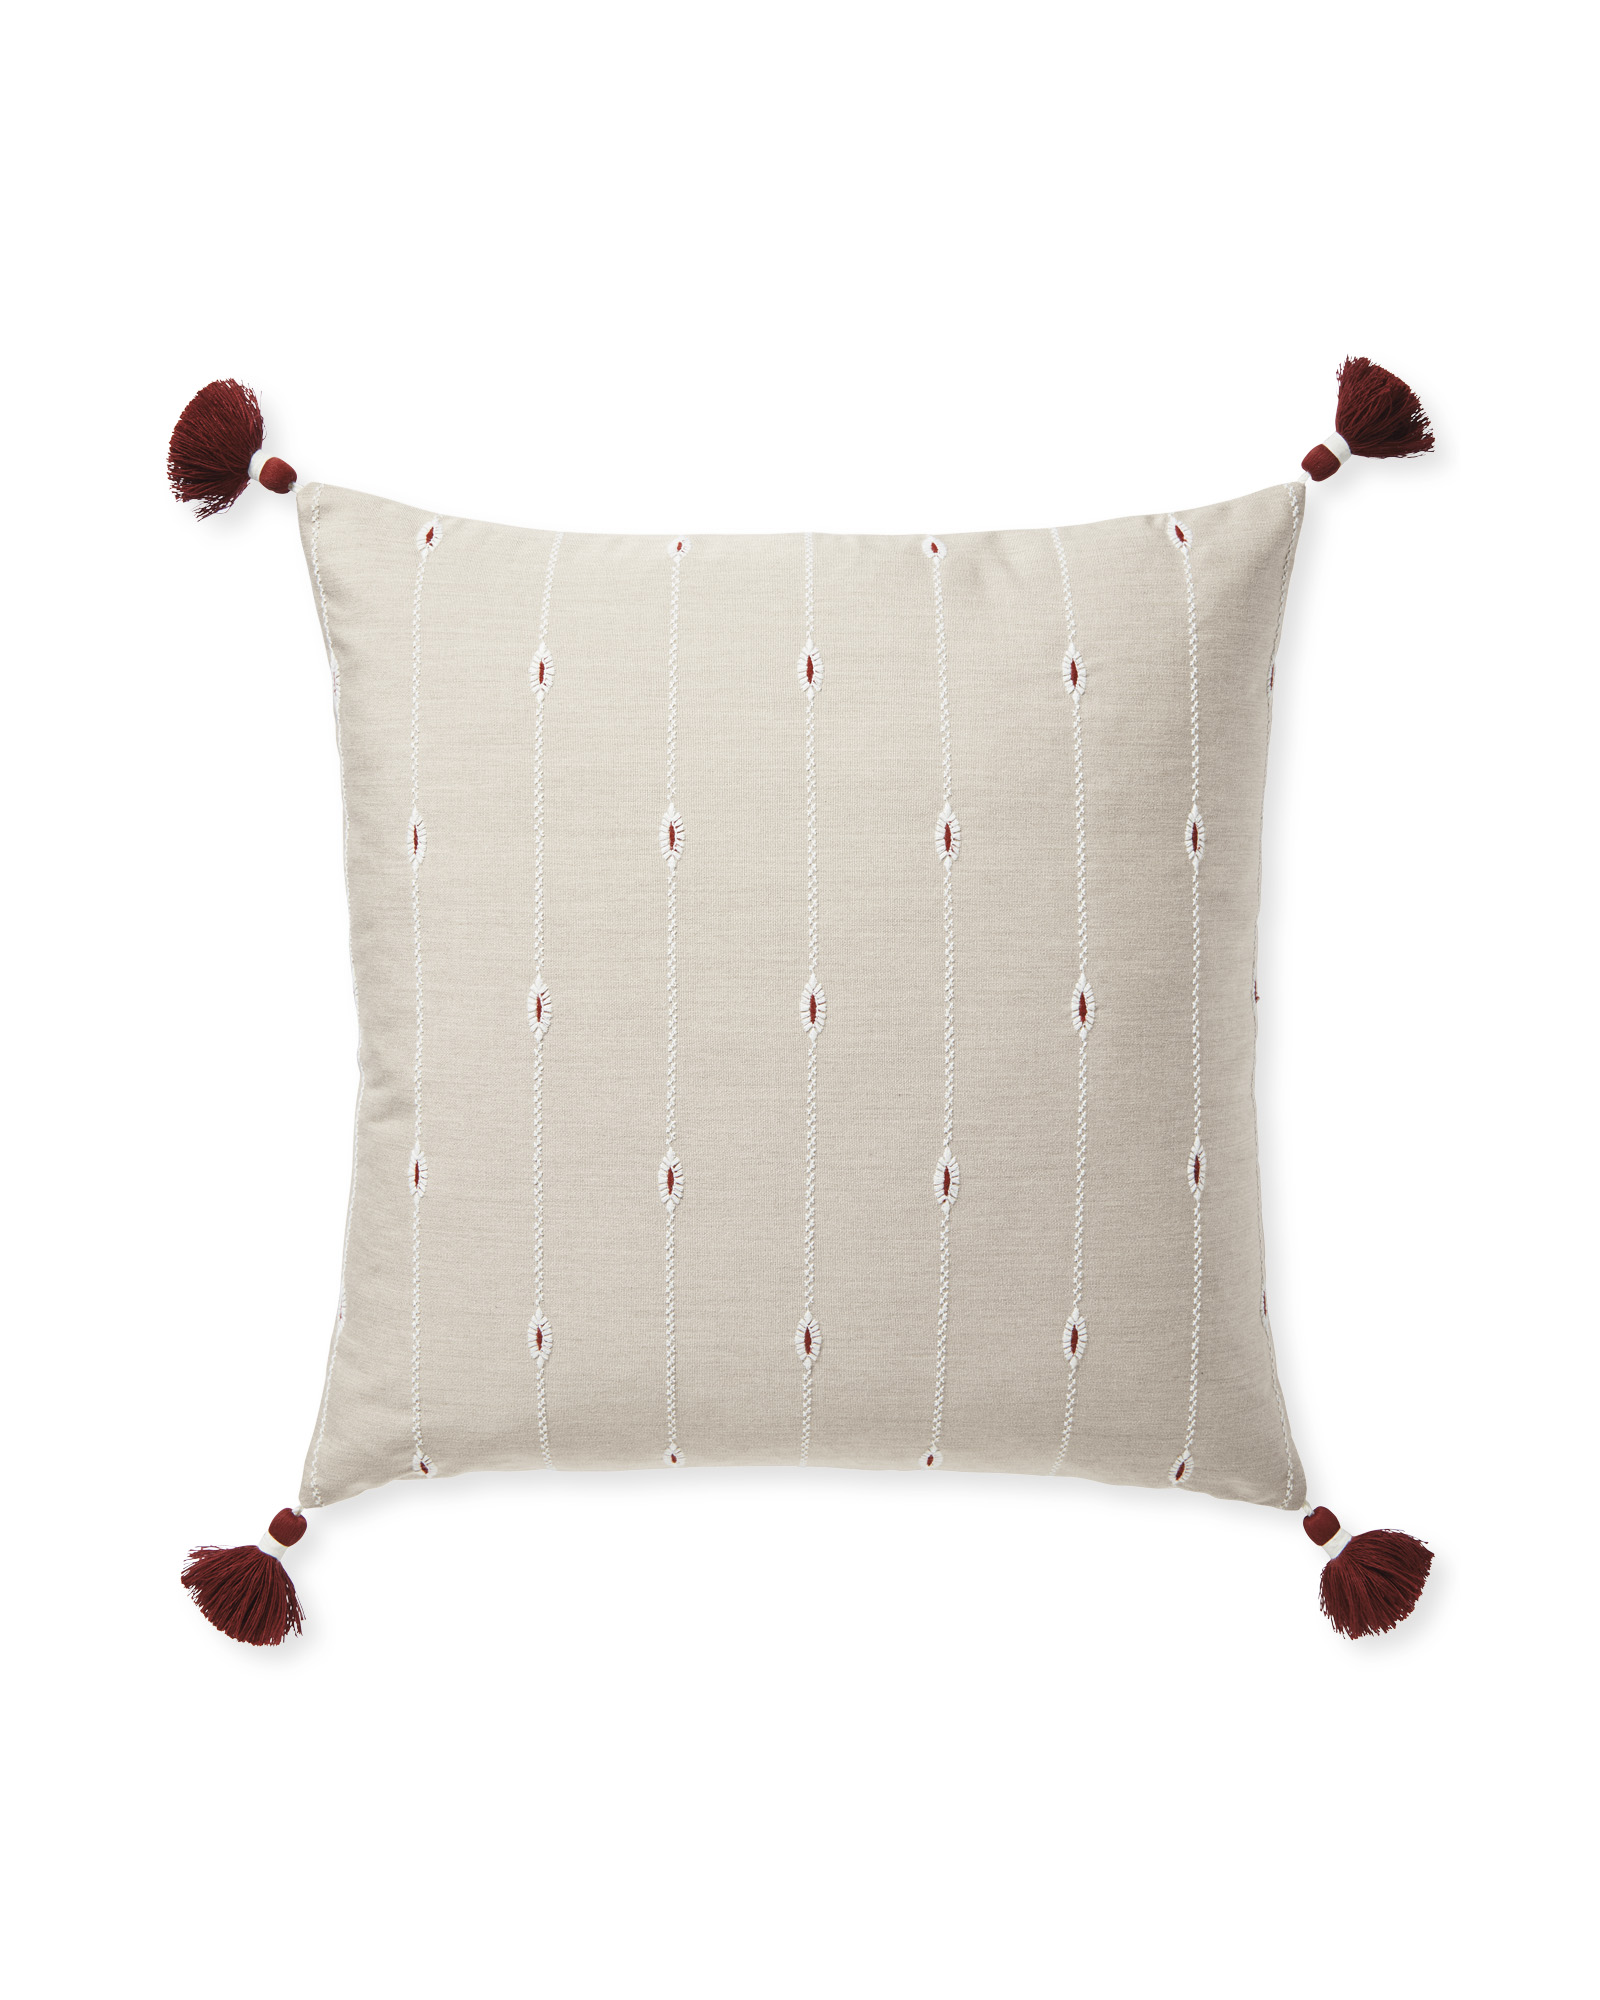 Rivoli Pillow Cover - Flax/Terracotta,